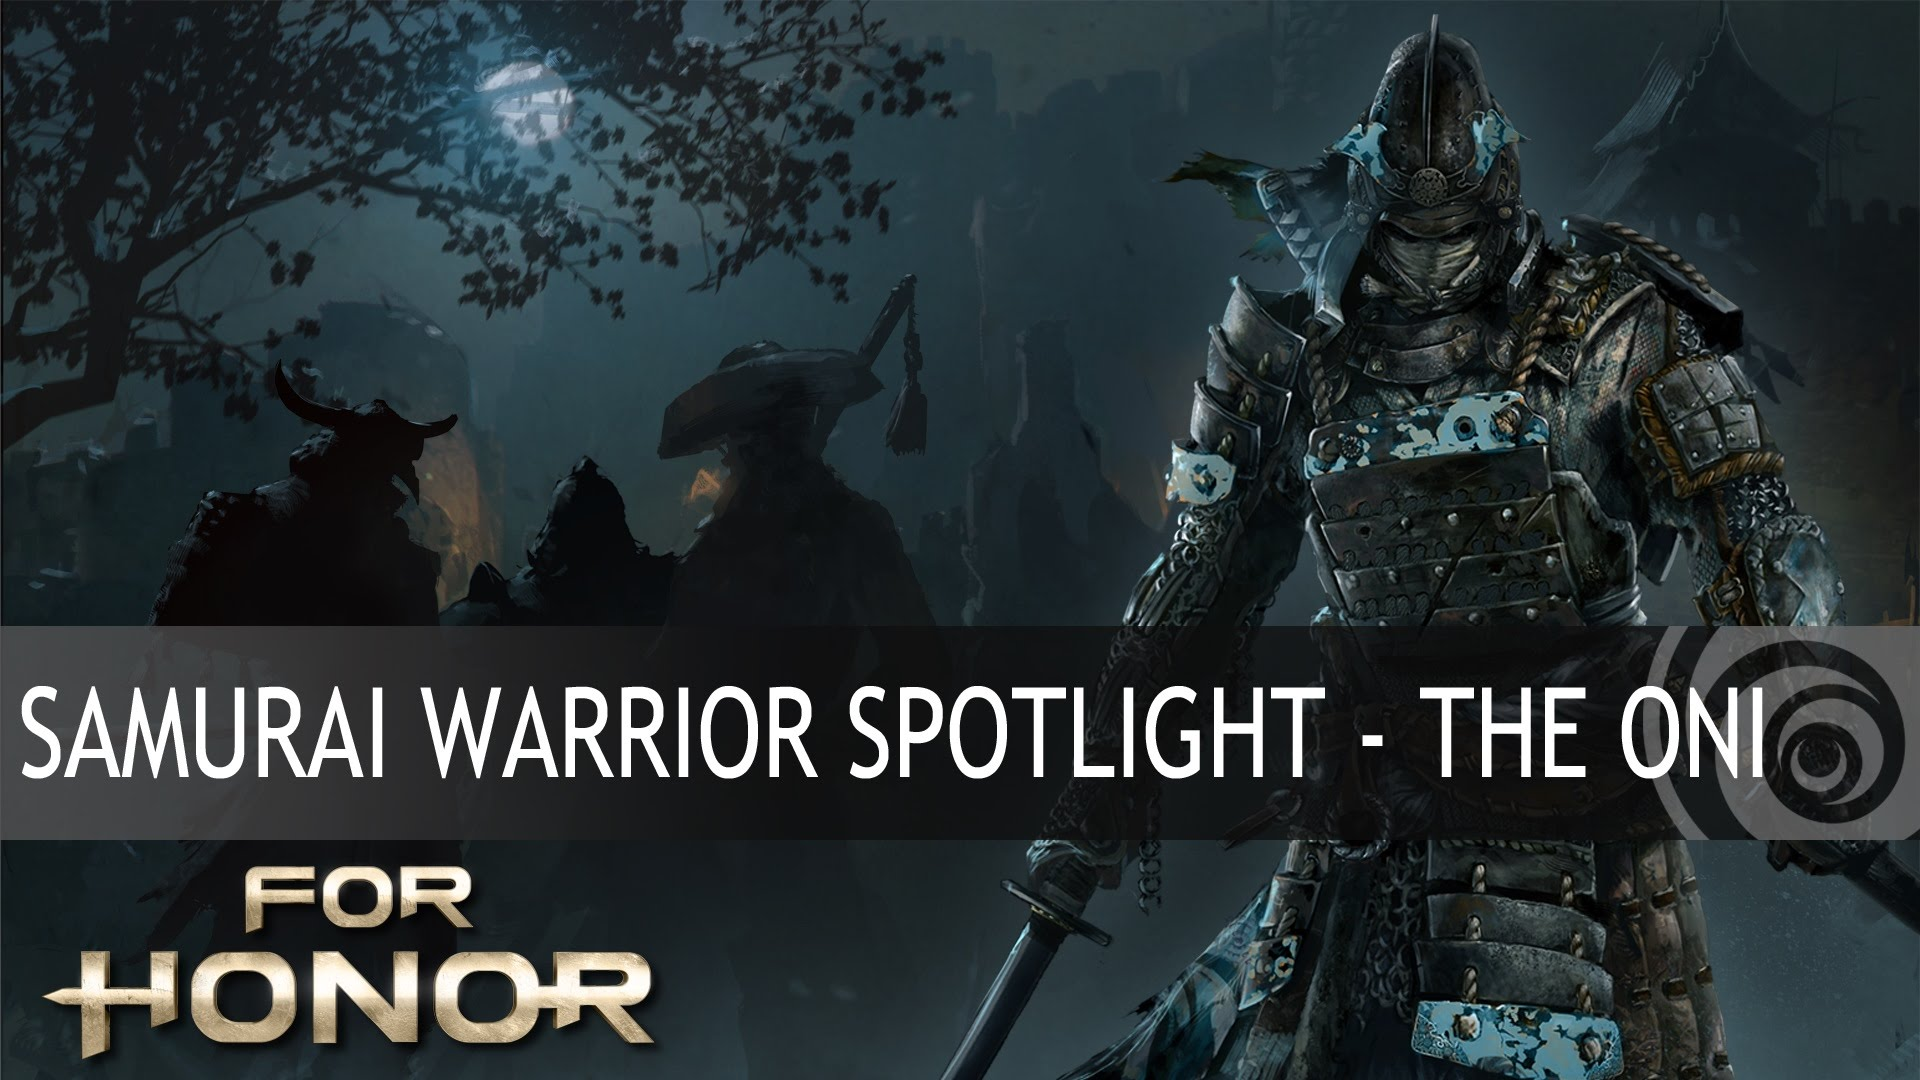 FOR HONOR - Samurai Warrior Spotlight - The Oni